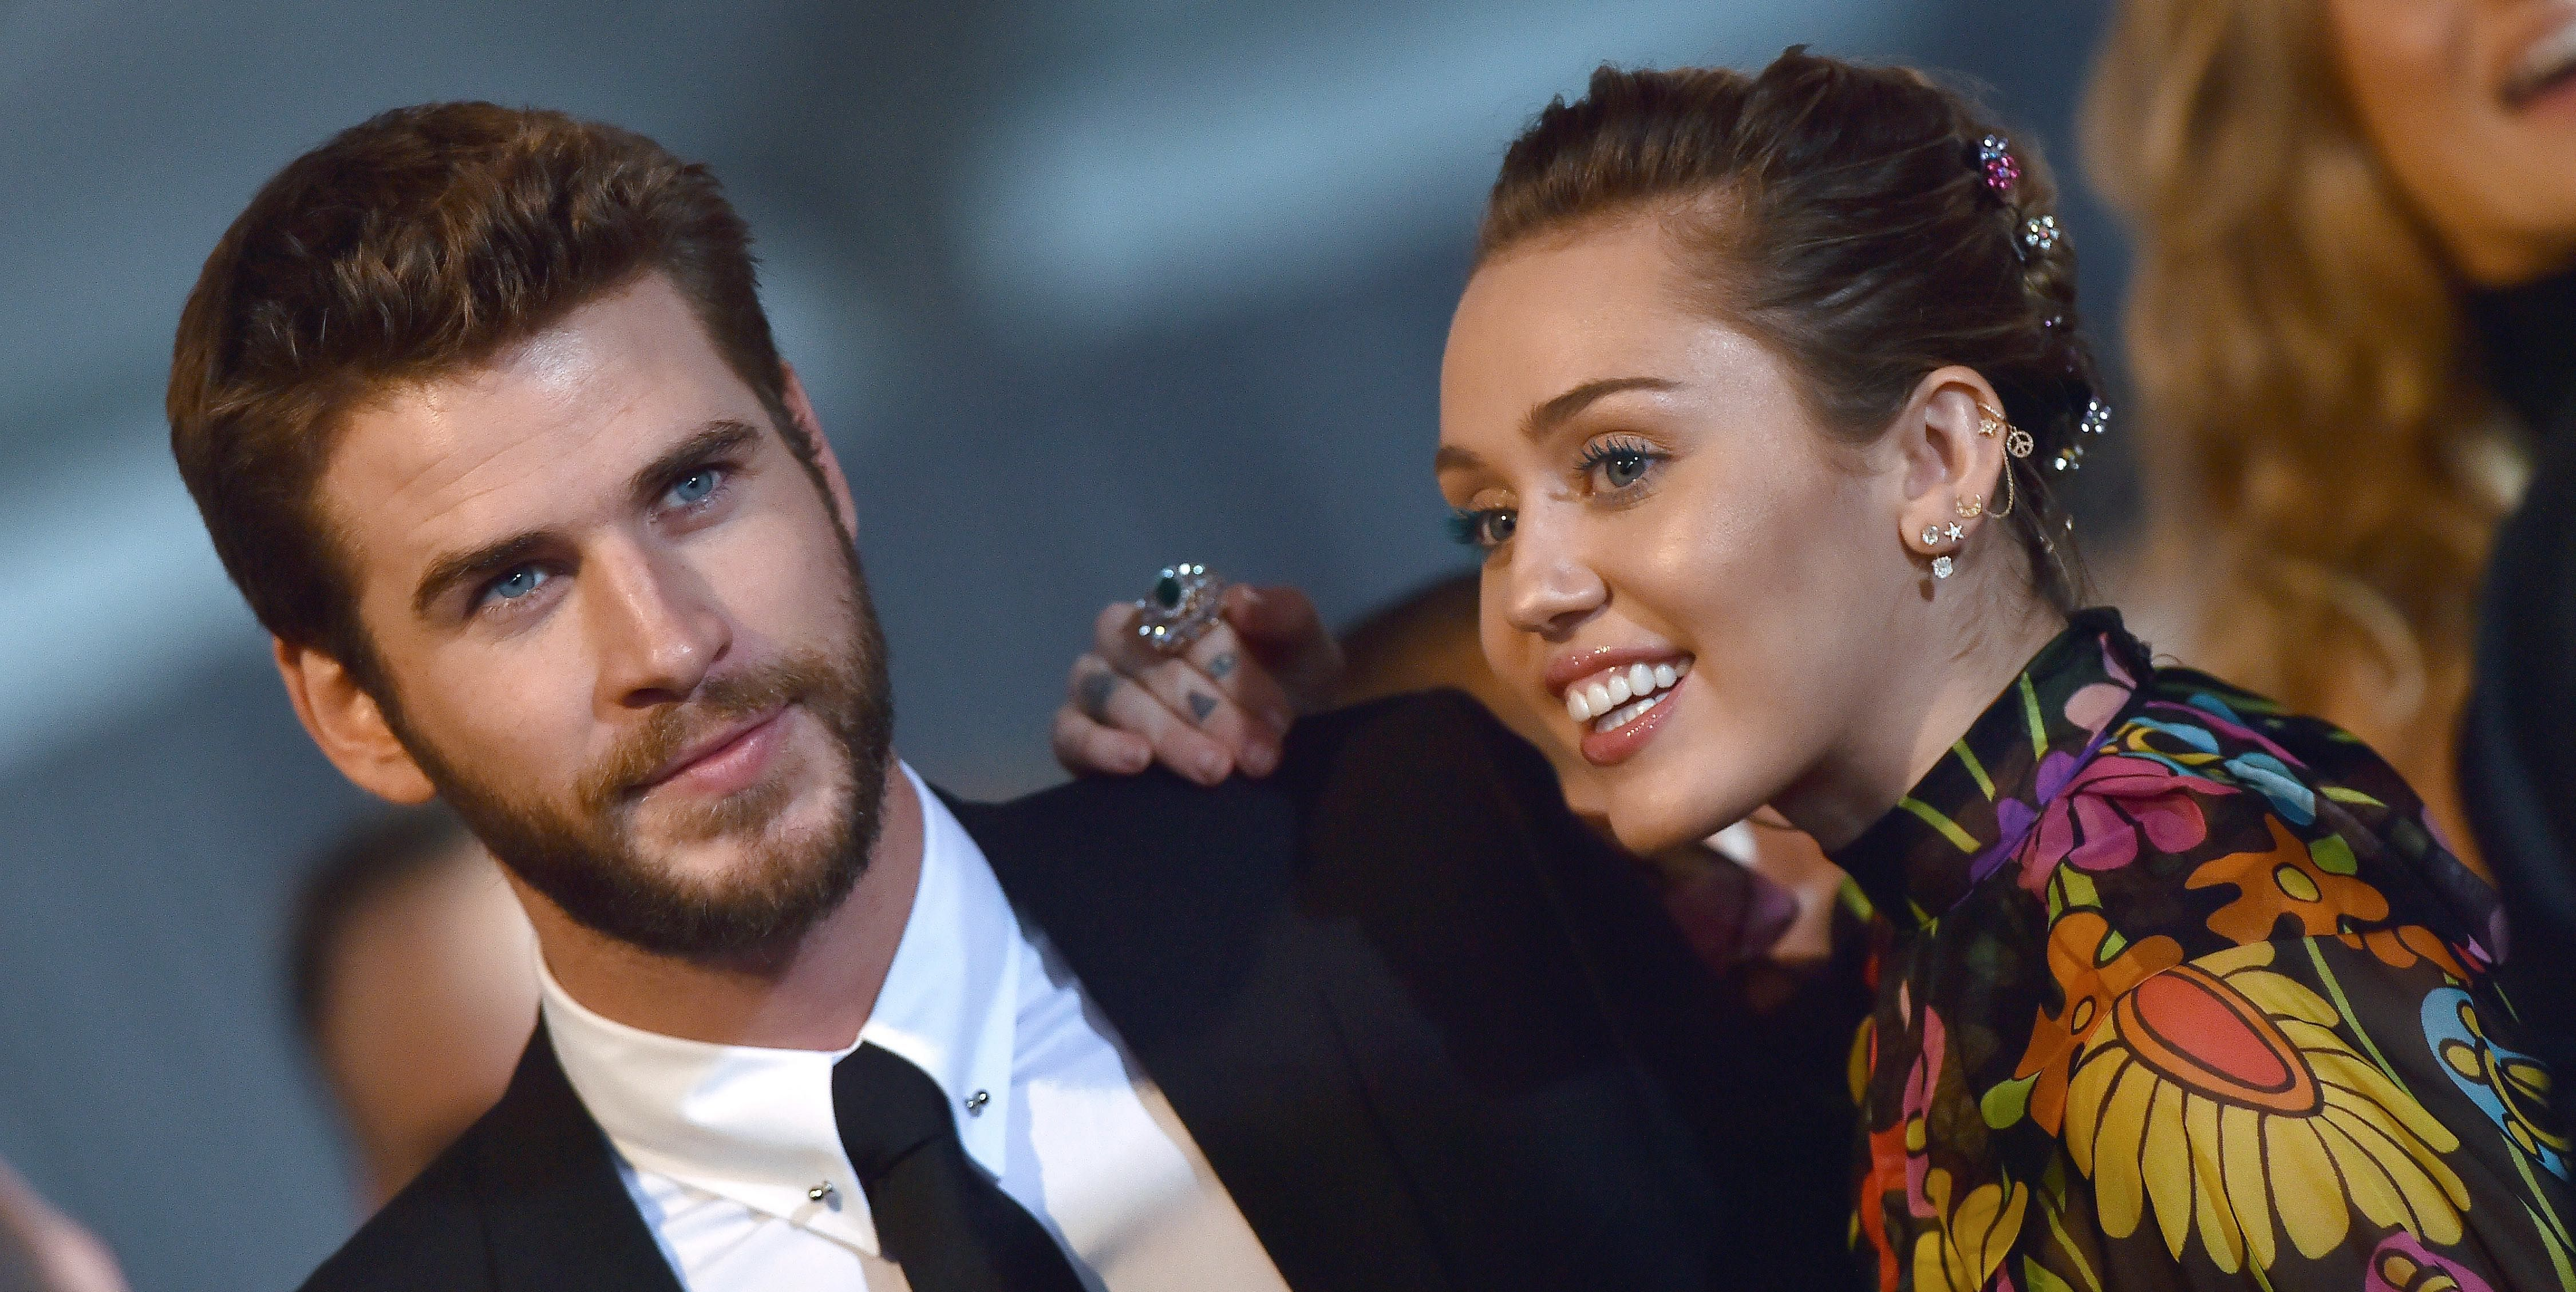 Miley Cyrus Explains Why She Calls Liam Hemsworth Her 'Survival Partner'